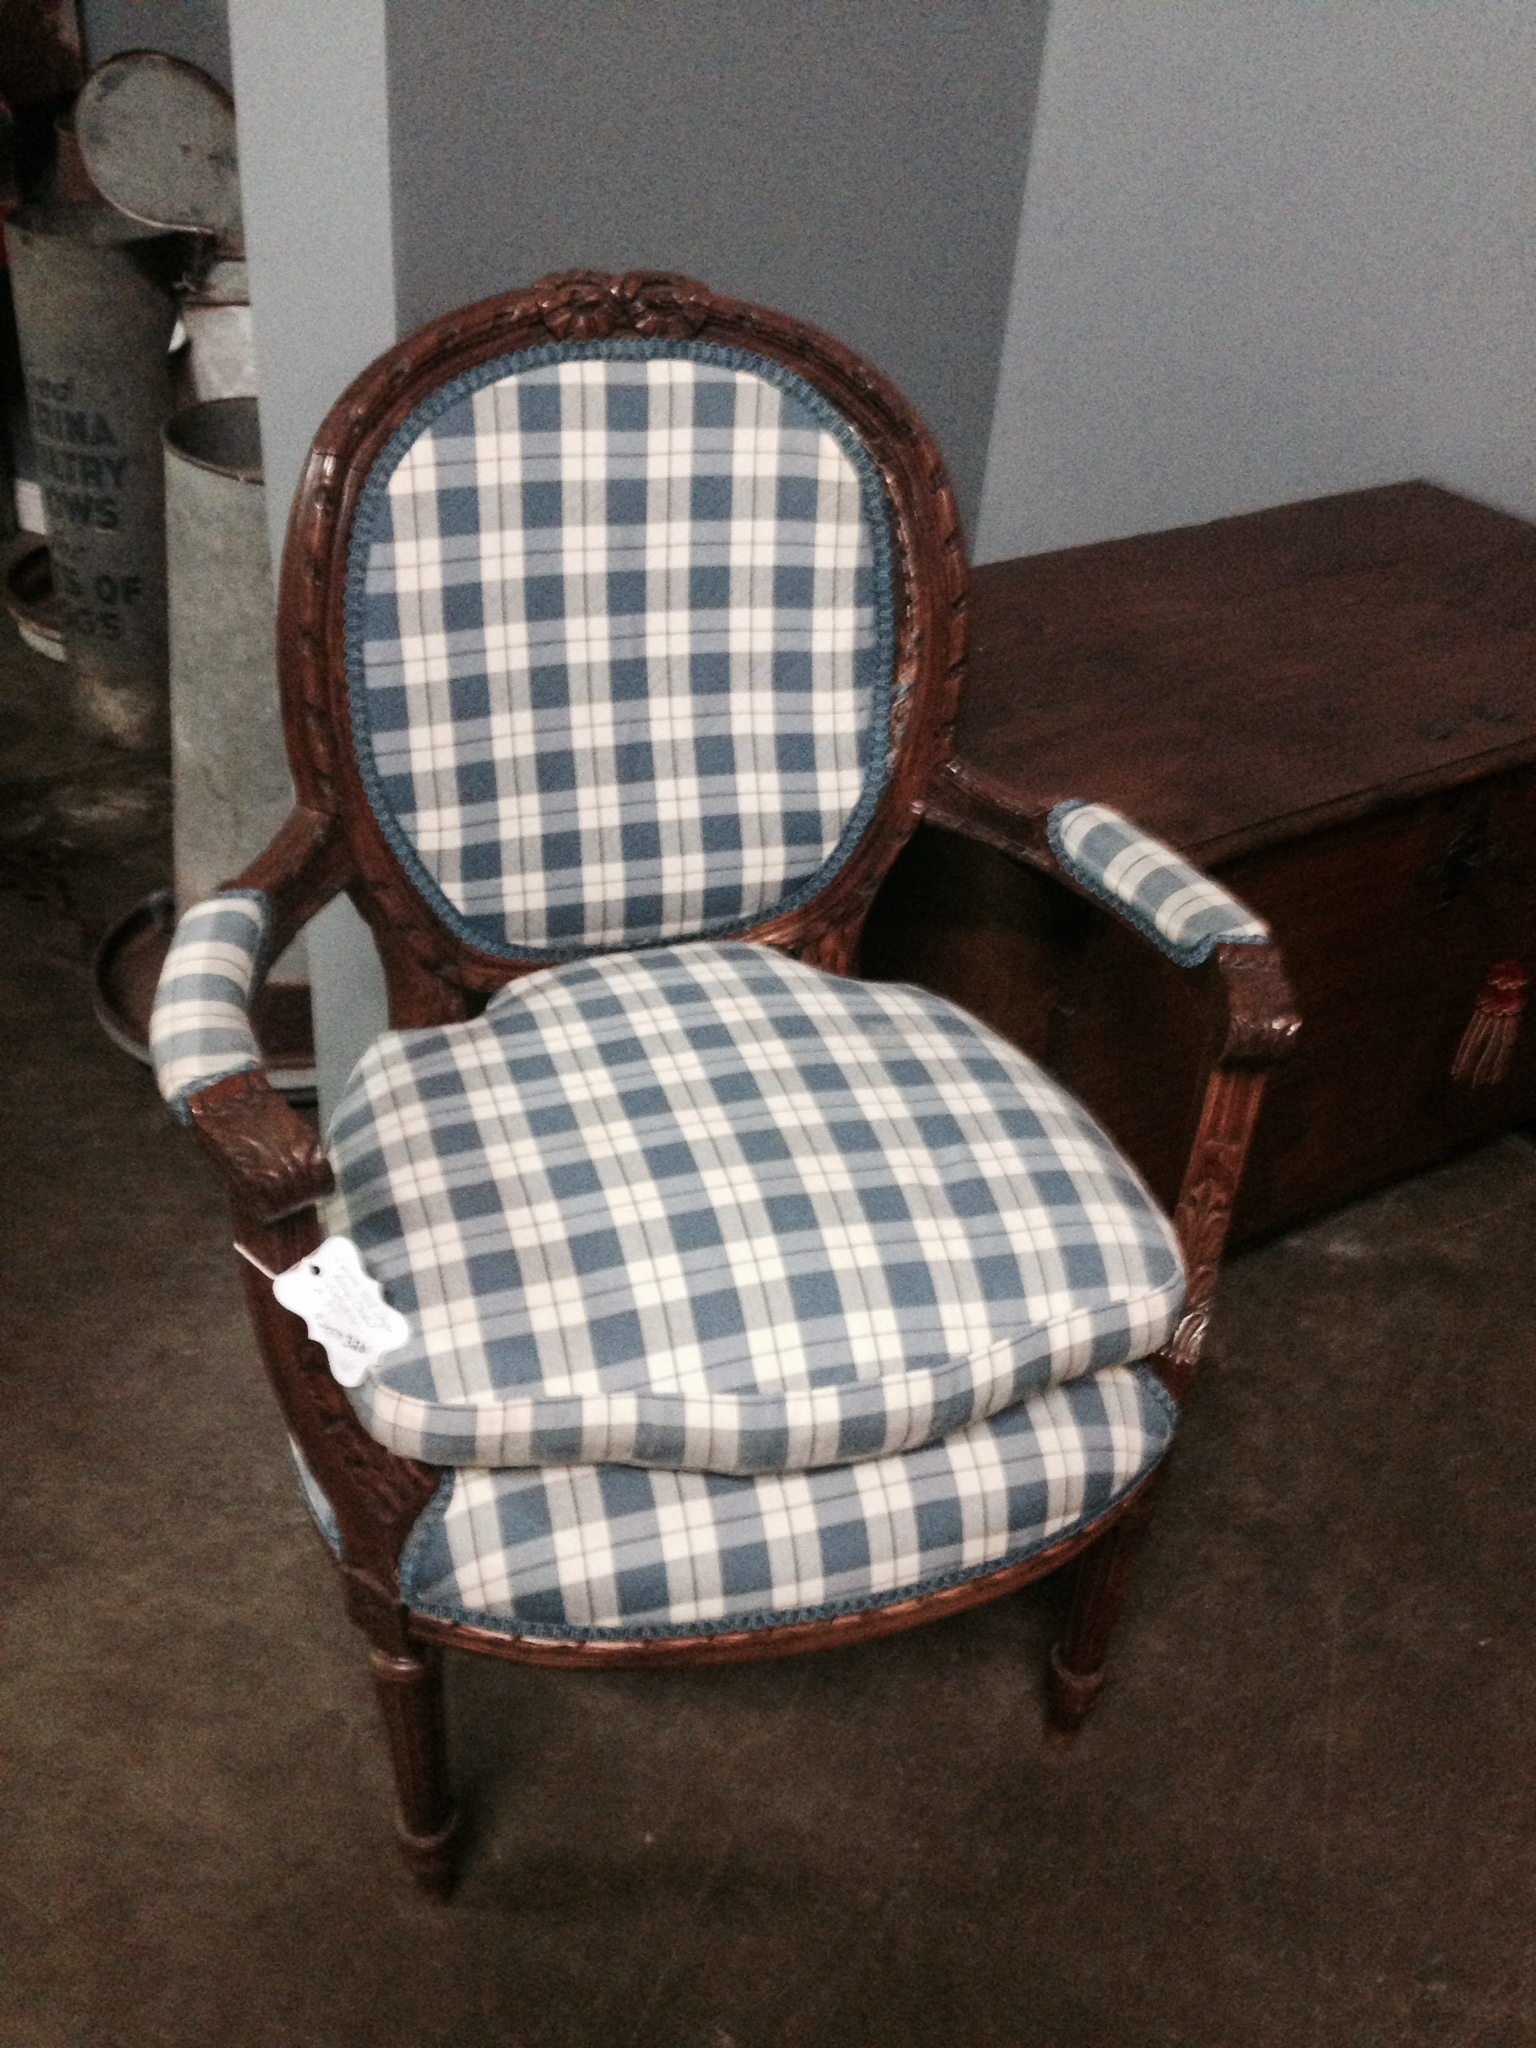 Country French Fauteuil with blue and white checks.